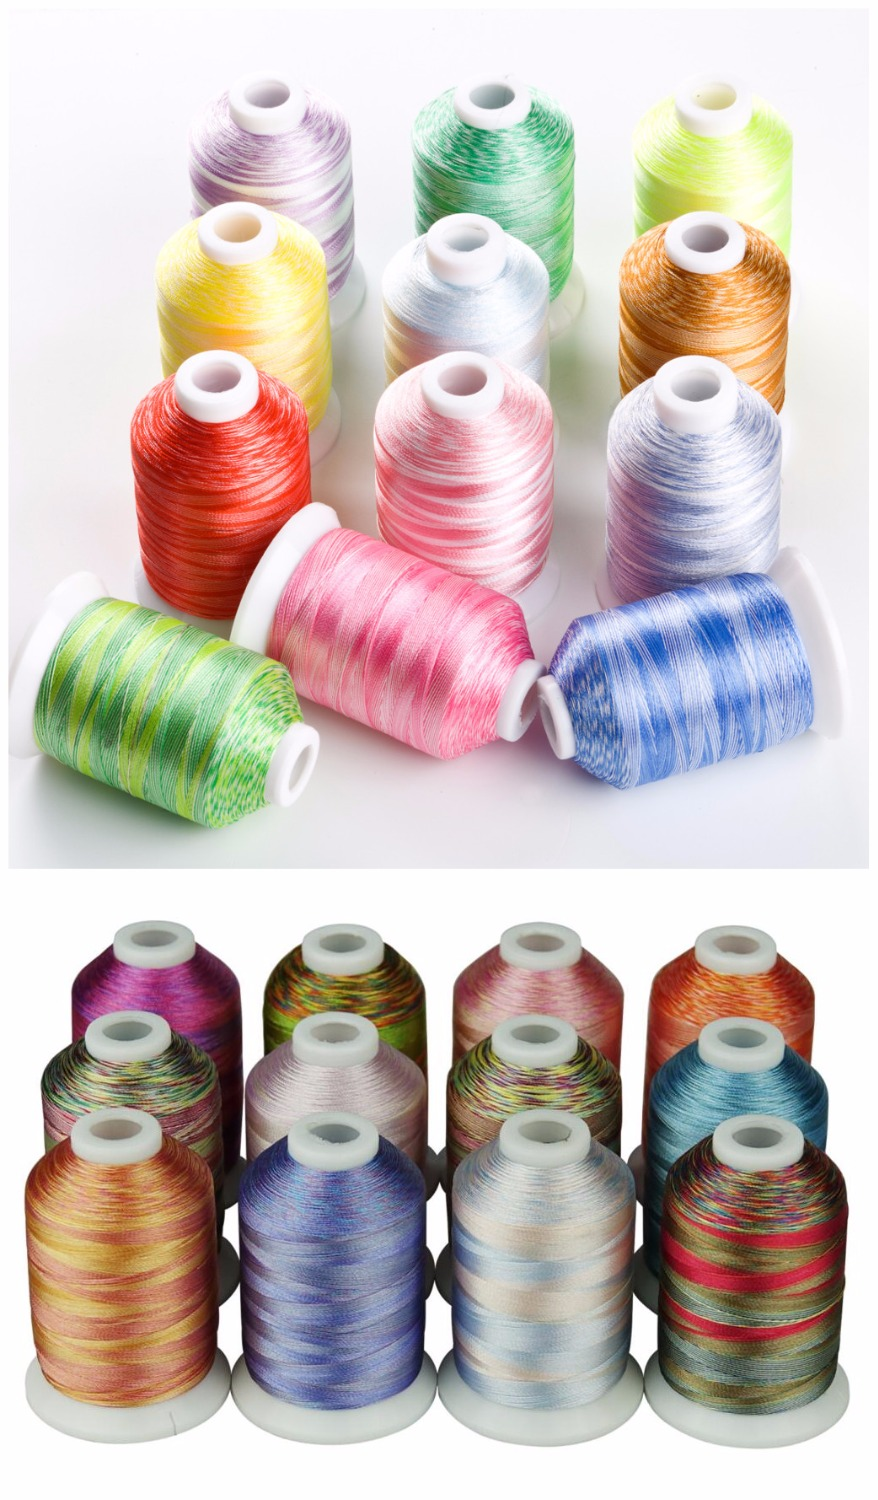 24 Multi colors Machine Embroidery Thread for Janome Singer Brother Babylock Pfaff etc machine hand sewing